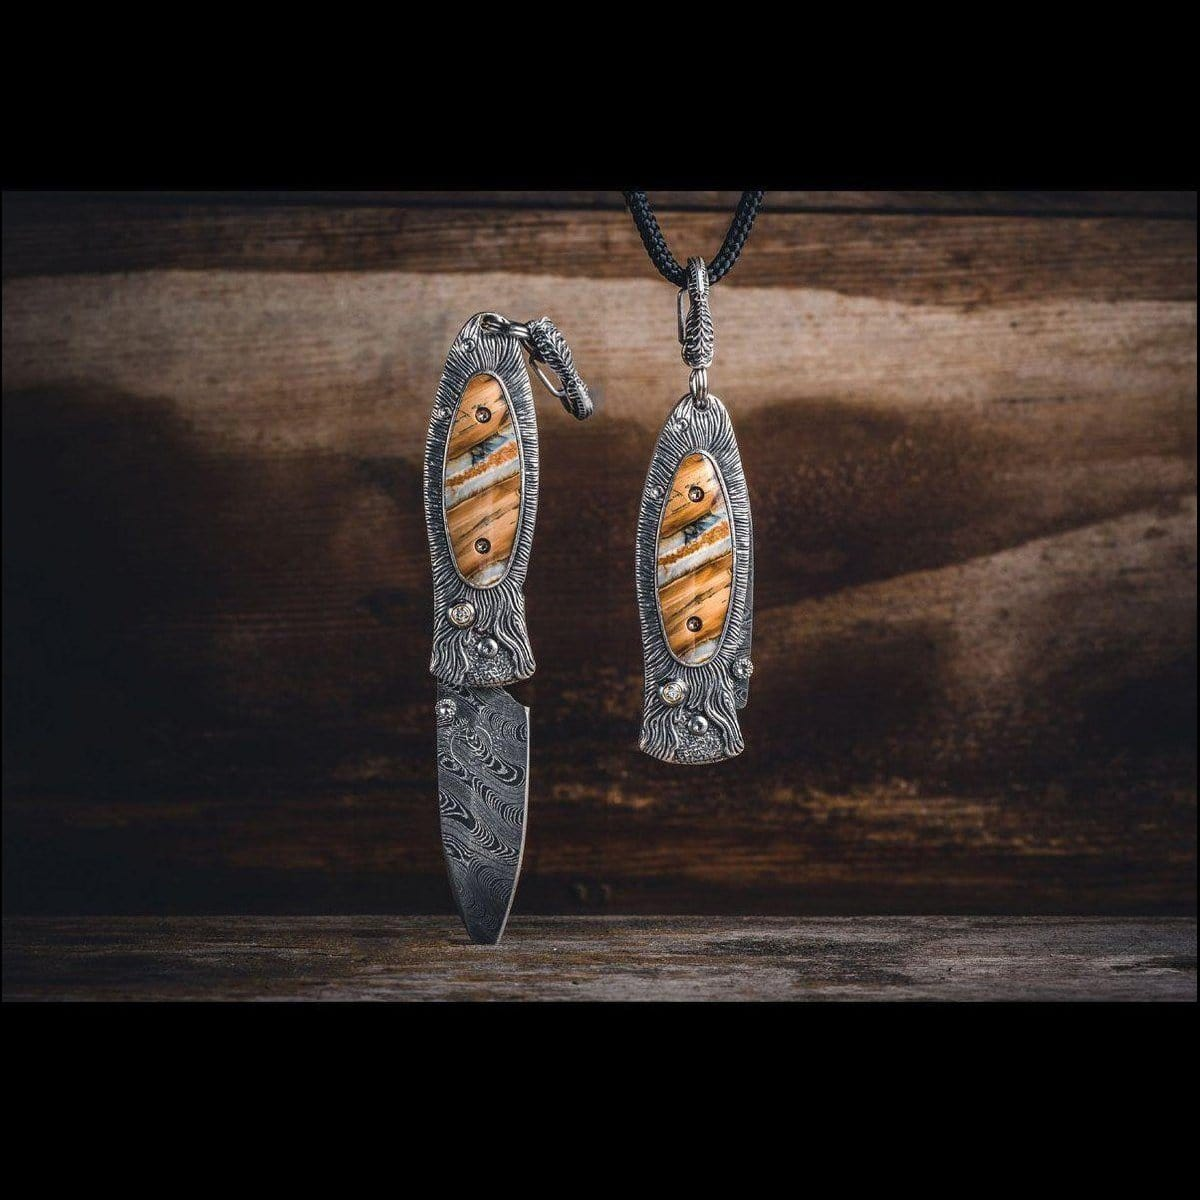 Morpheus Fire Pendant Knife - B02 FIRE-William Henry-Renee Taylor Gallery